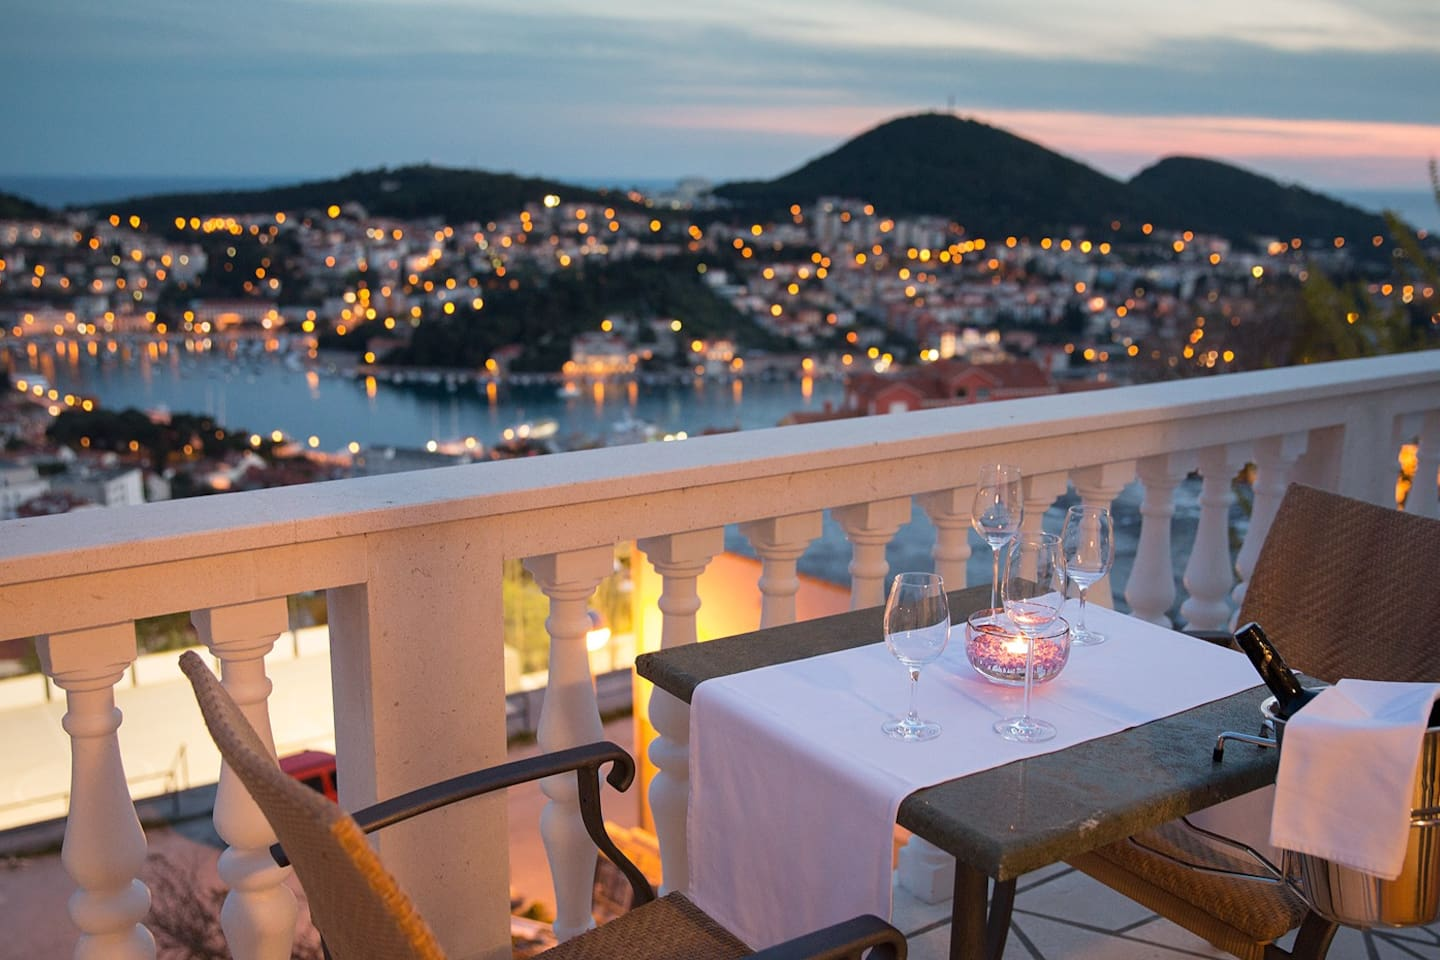 Care for a glass of wine while enjoying wonderful panoramic view?